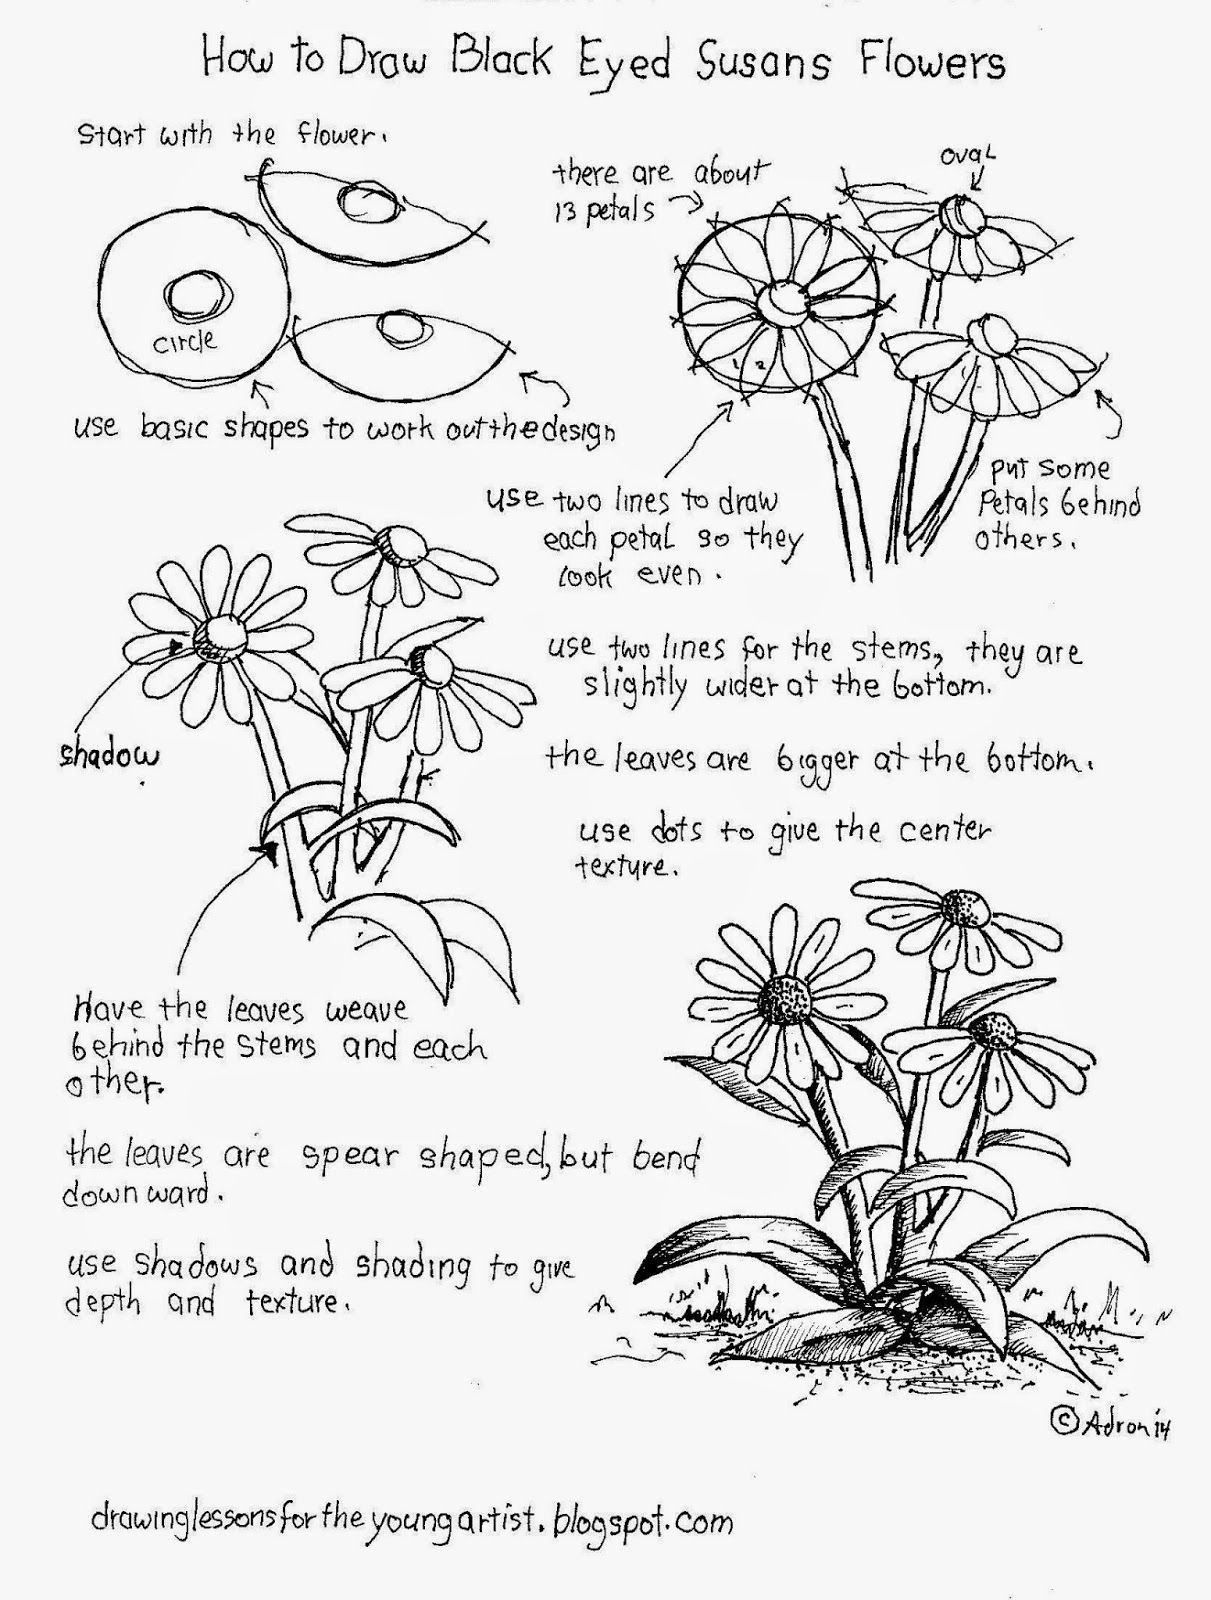 How To Draw Black Eyed Susan Flowers, Free Worksheet (How to Draw ...